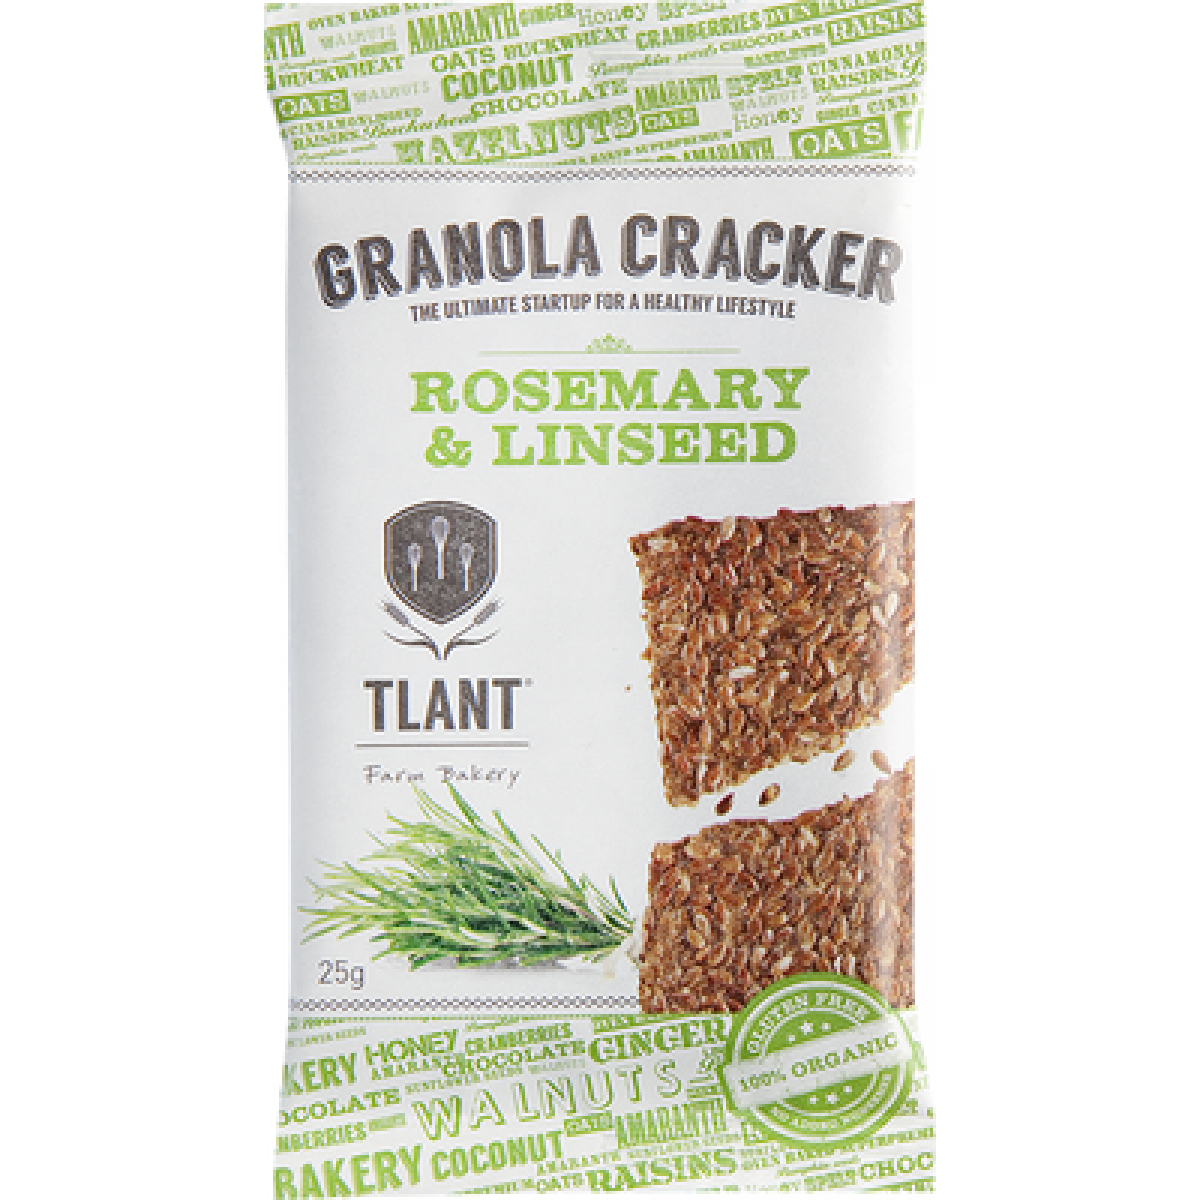 Granola Cracker Rosemary & Linseed